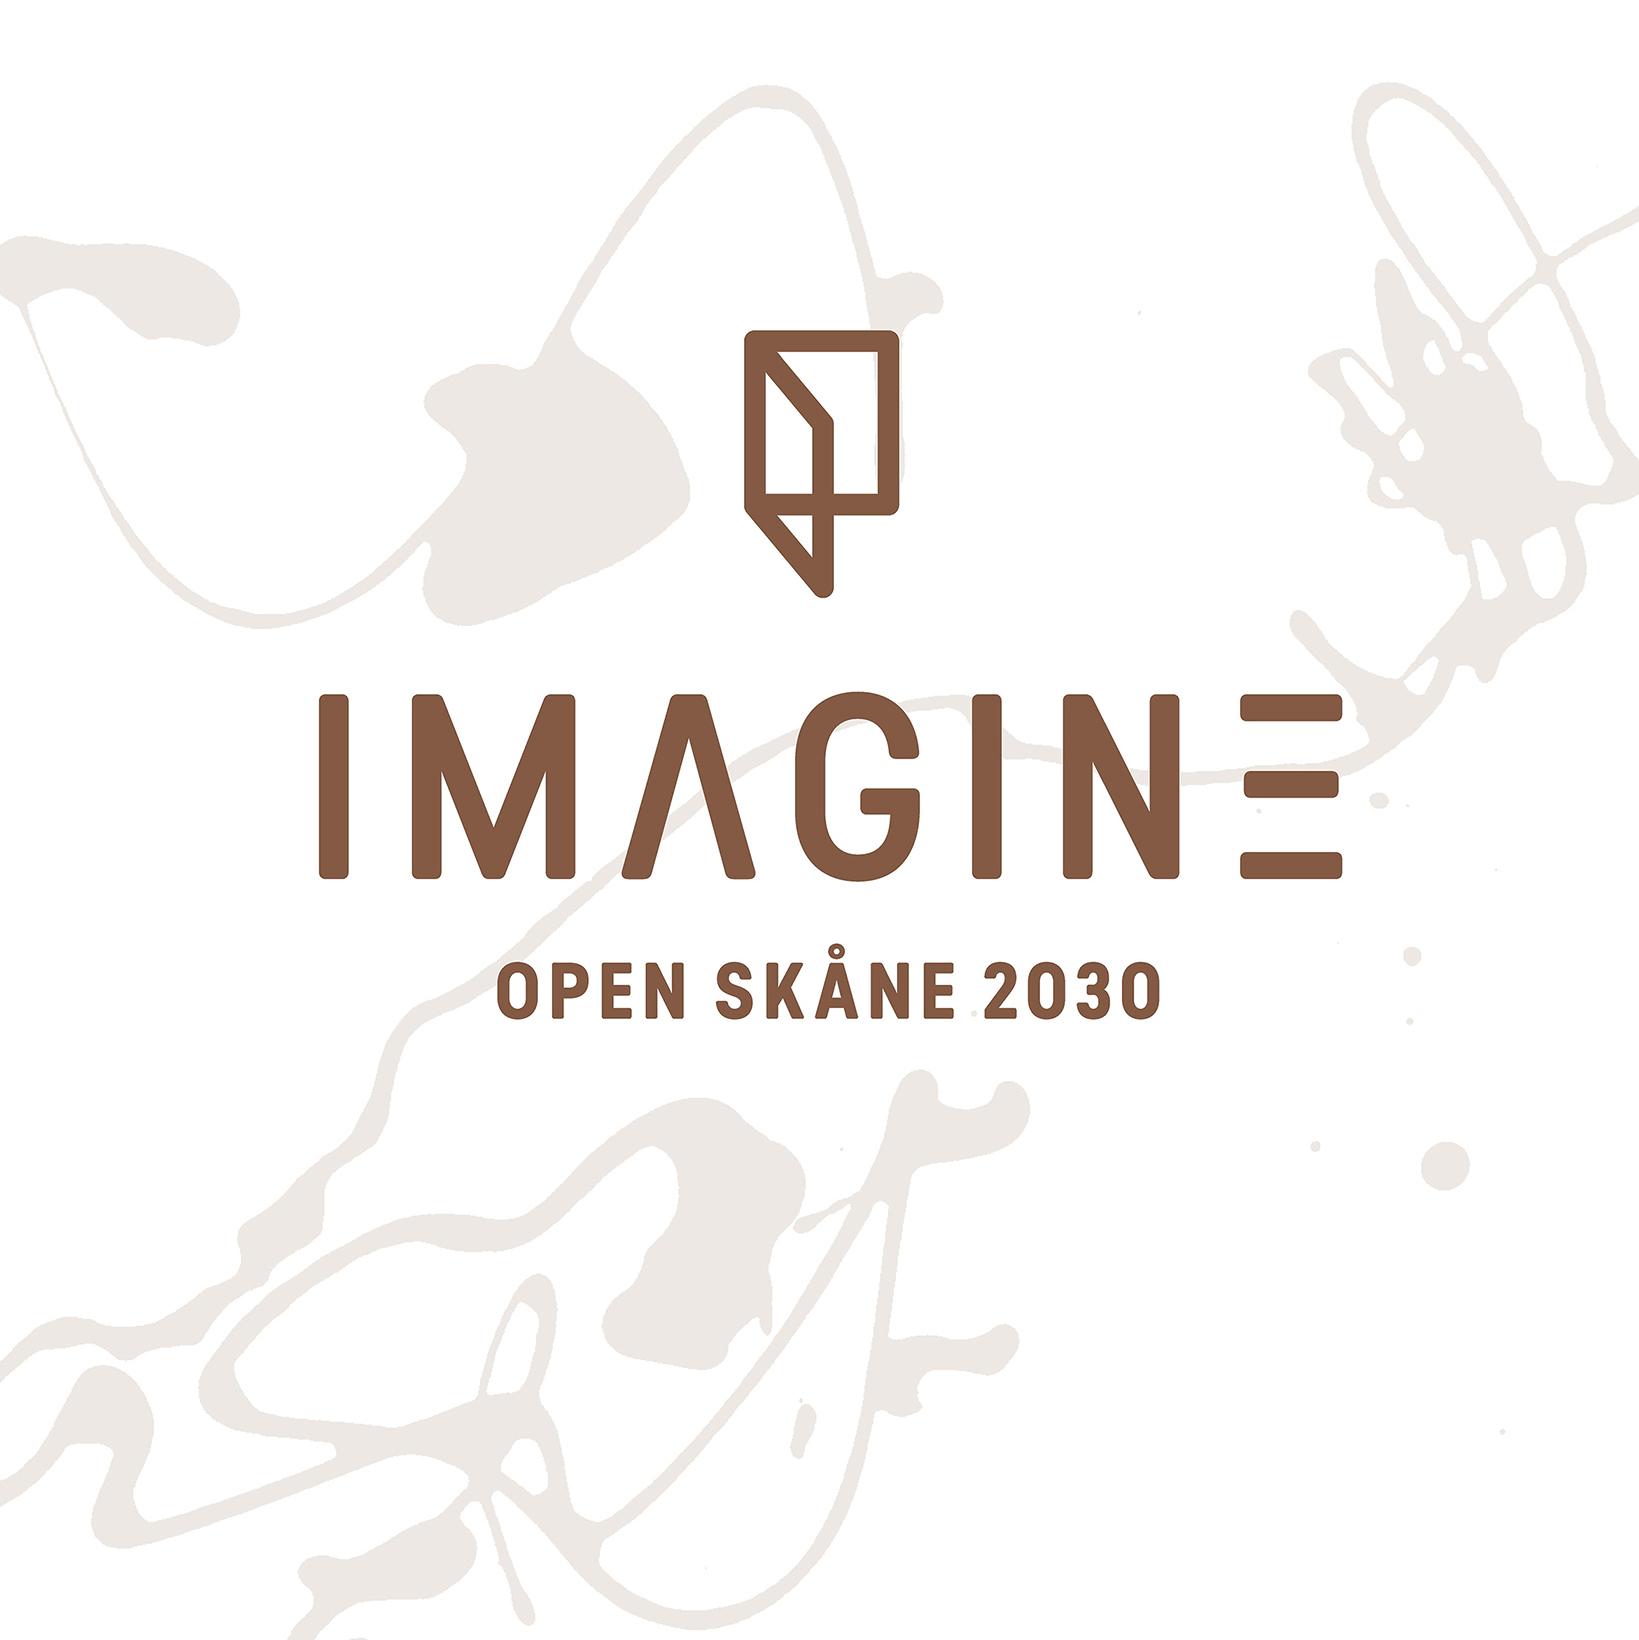 IMAGINE Open Skåne 2030, open competition